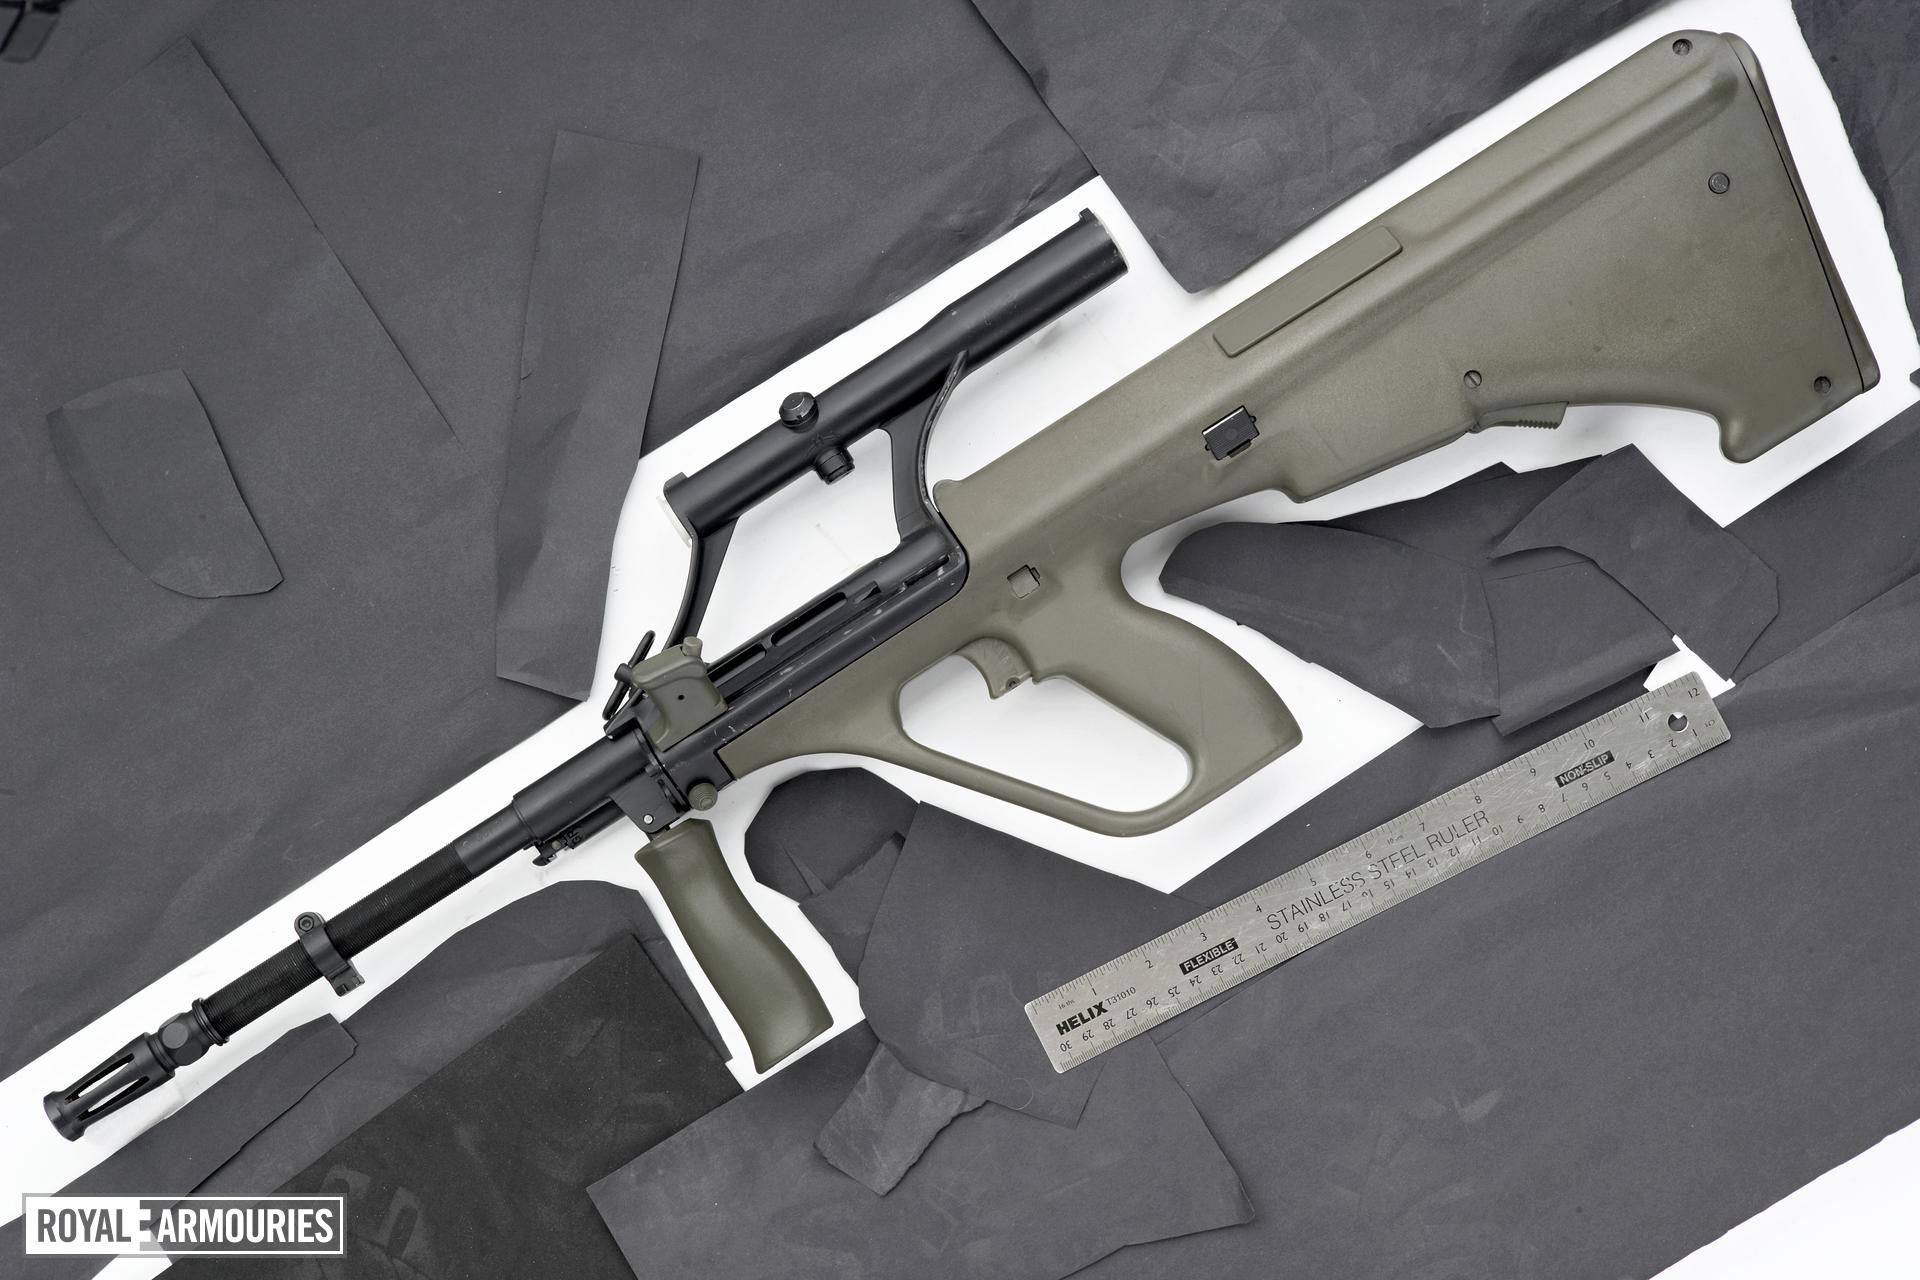 Centrefire automatic rifle - Steyr AUG F88